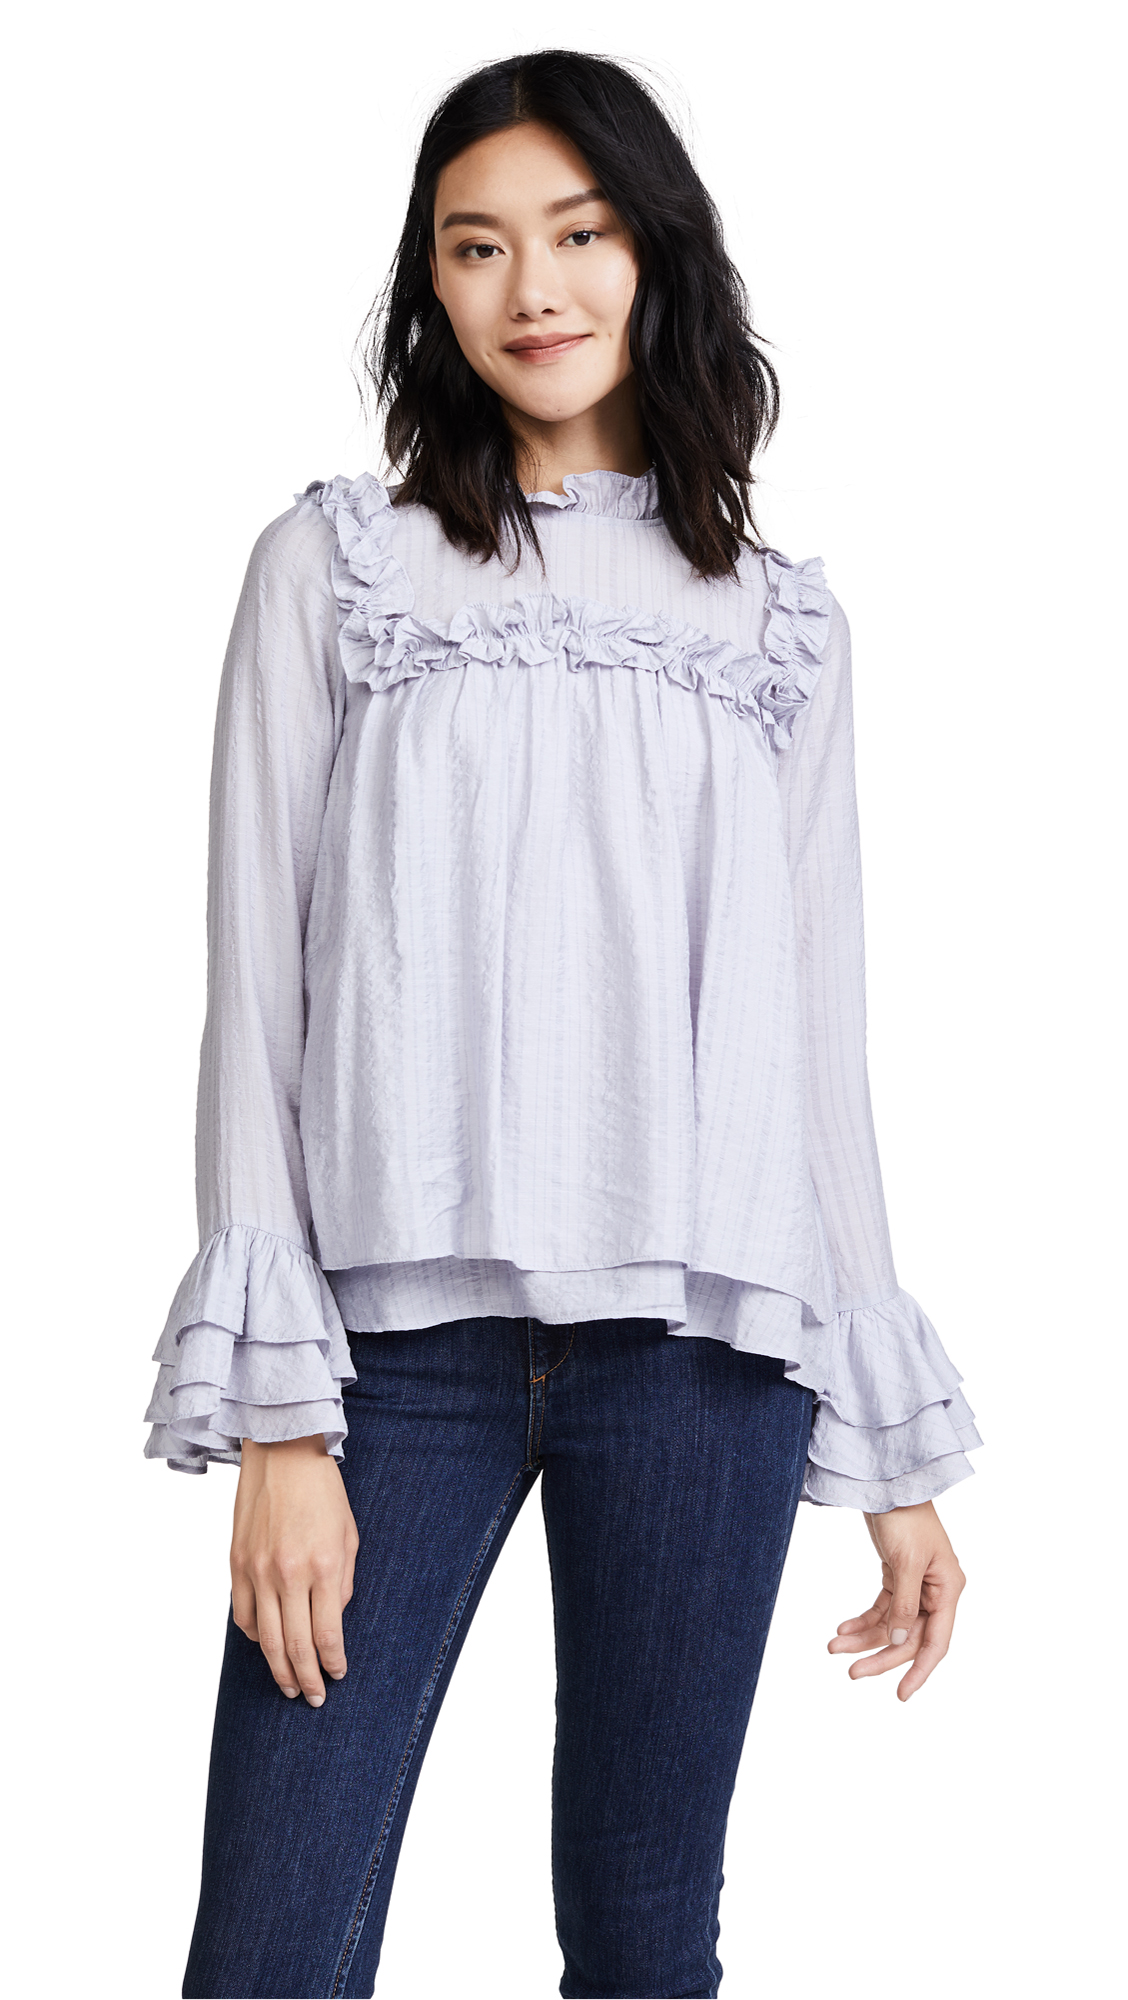 ENGLISH FACTORY Ruffled Blouse - Dusty Blue